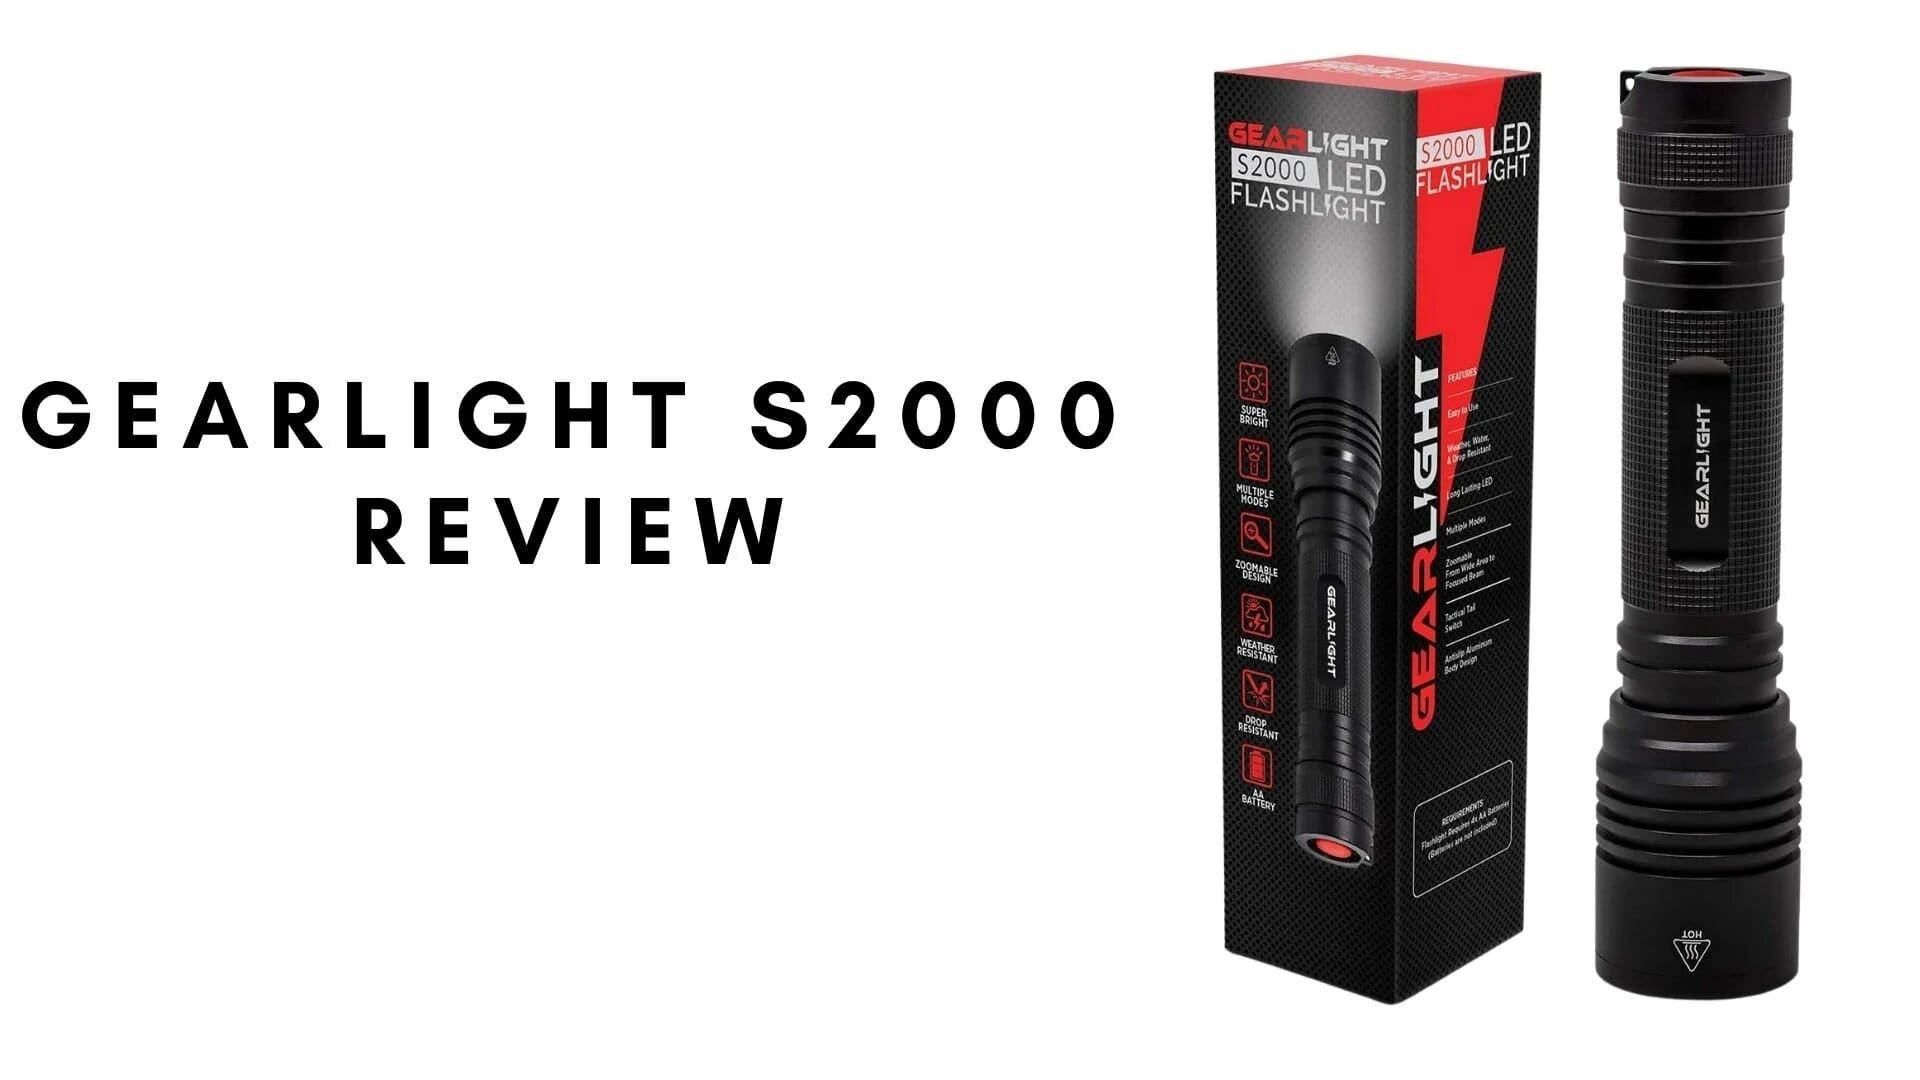 MsForce Review 2 1 - GearLight S2000 Review